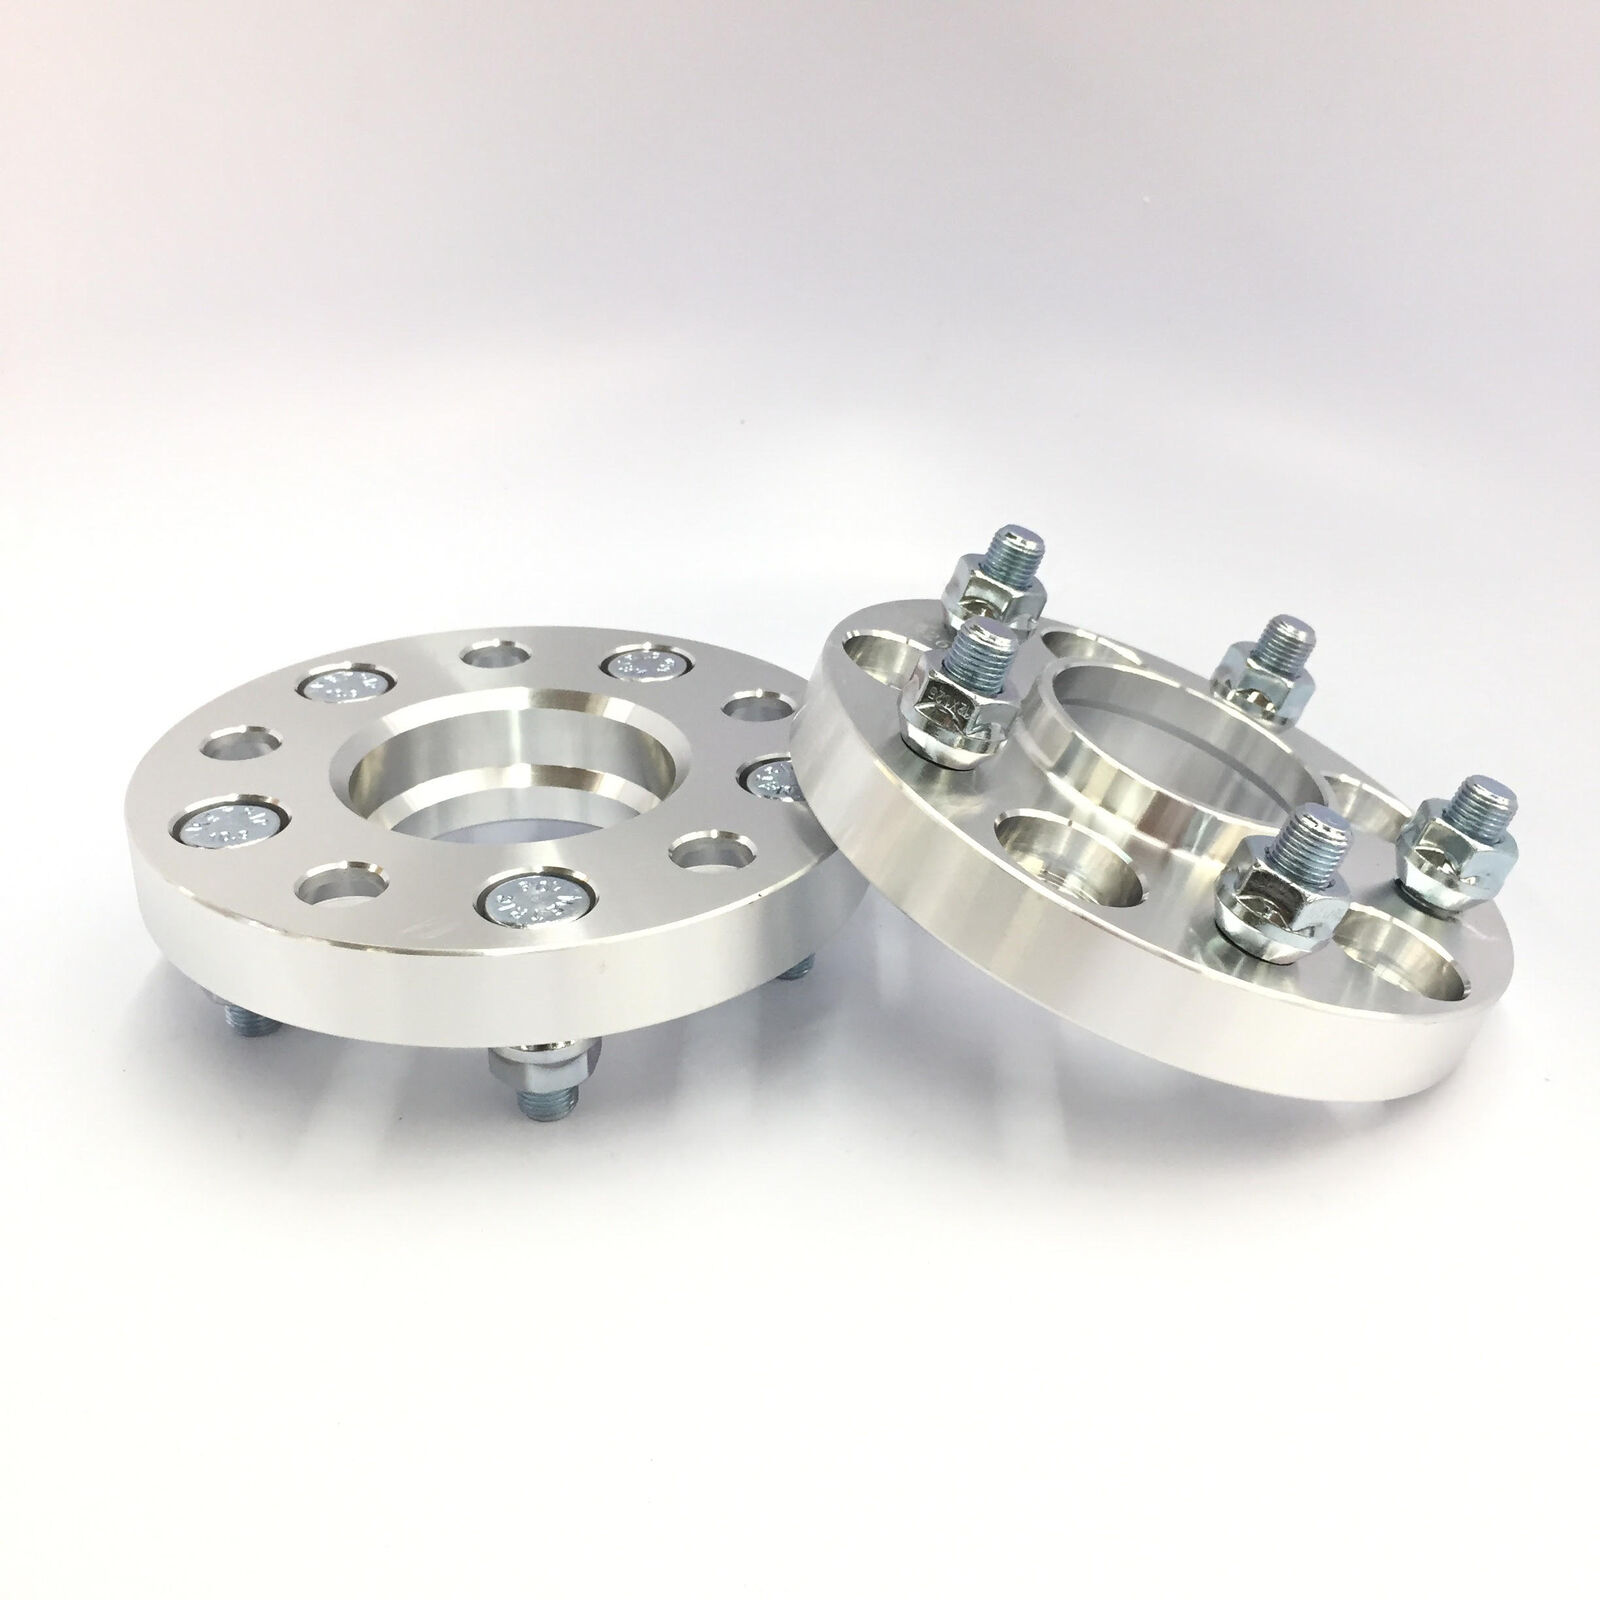 Customadeonly 2 Pieces 1 25mm Lug Centric Wheel Spacers Adapters Bolt Pattern 8x6.5 to 8x6.5 Thread Pitch 9//16 Studs Fits Dodge Ford